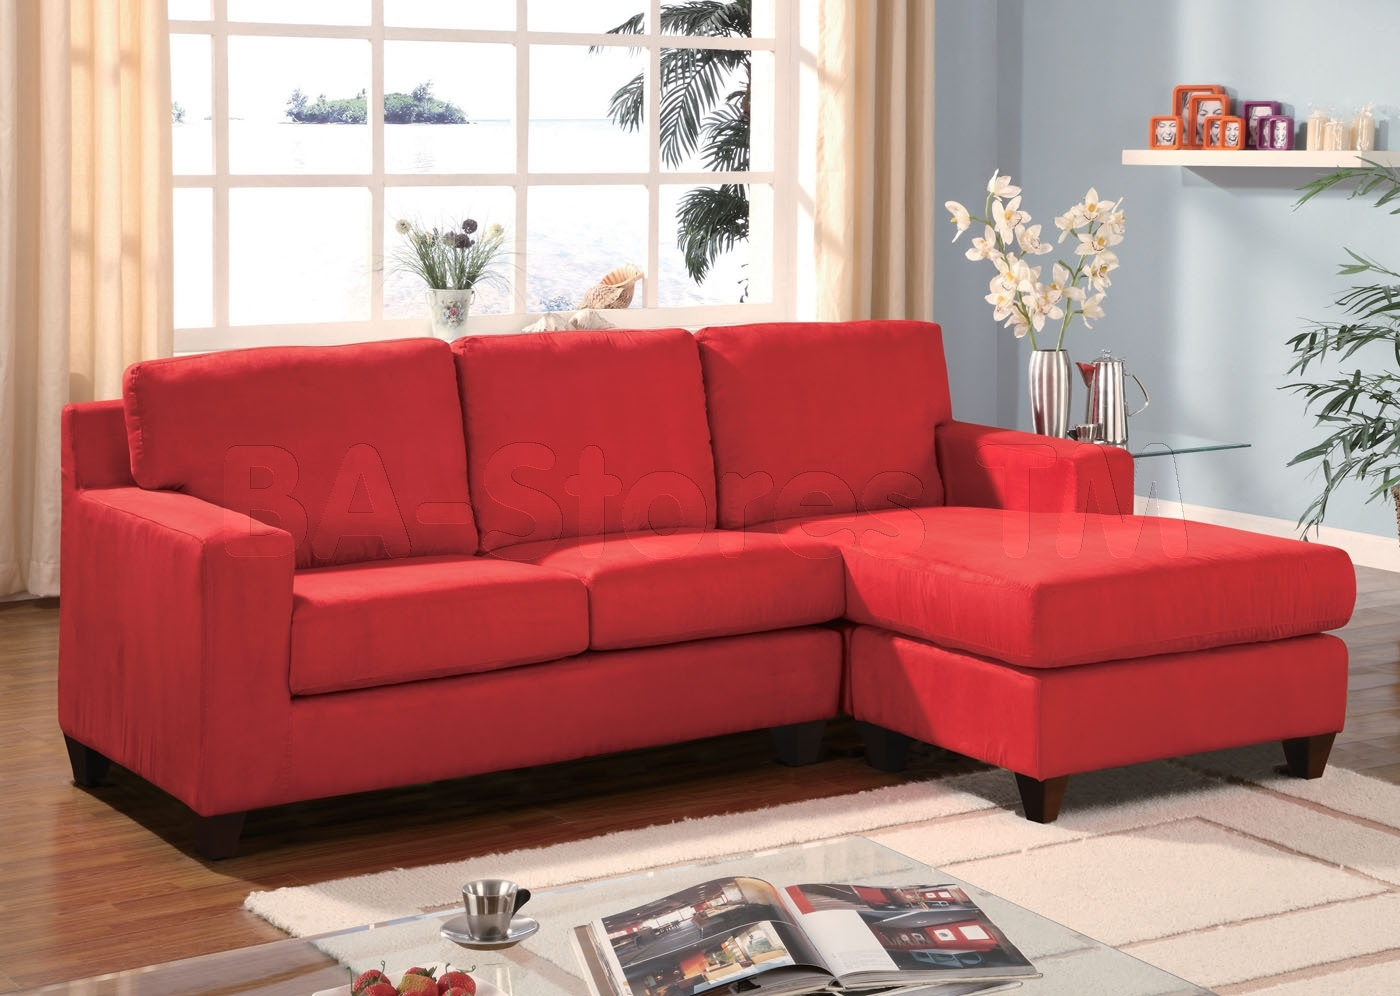 Red Sectional Sofa For Newly Wed Couples Home - Furnitureanddecors pertaining to Red Sectional Sofas (Image 9 of 10)